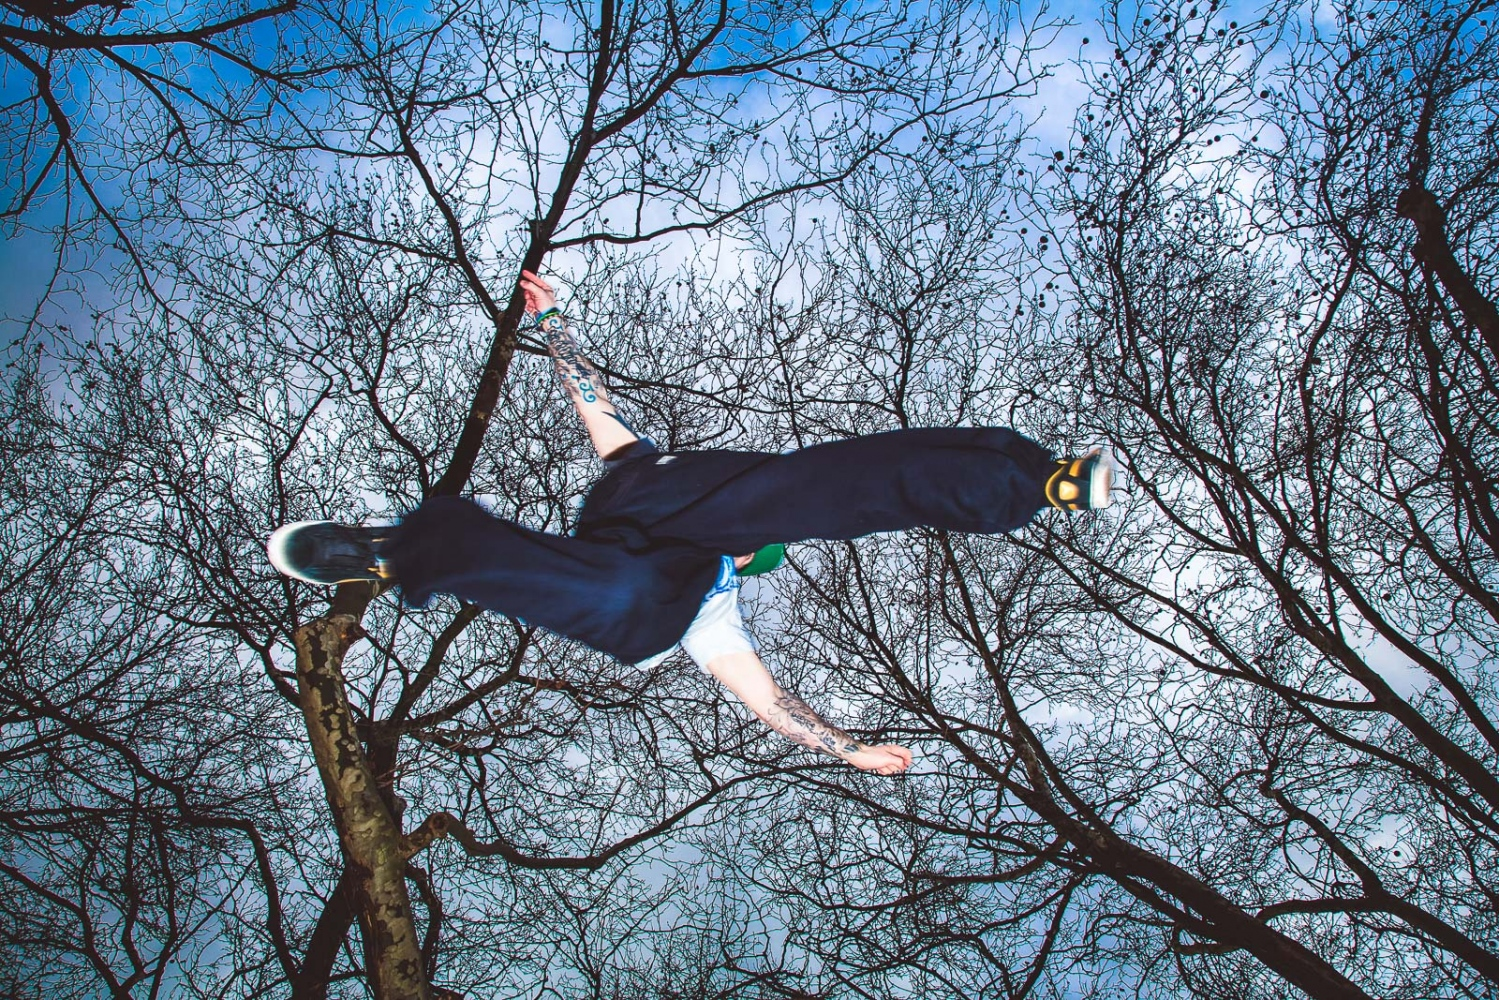 London, UK, February 15, 2013: Pete McKey, an athlete from the freerunning collective 'Parkour Generations', performs a jump.